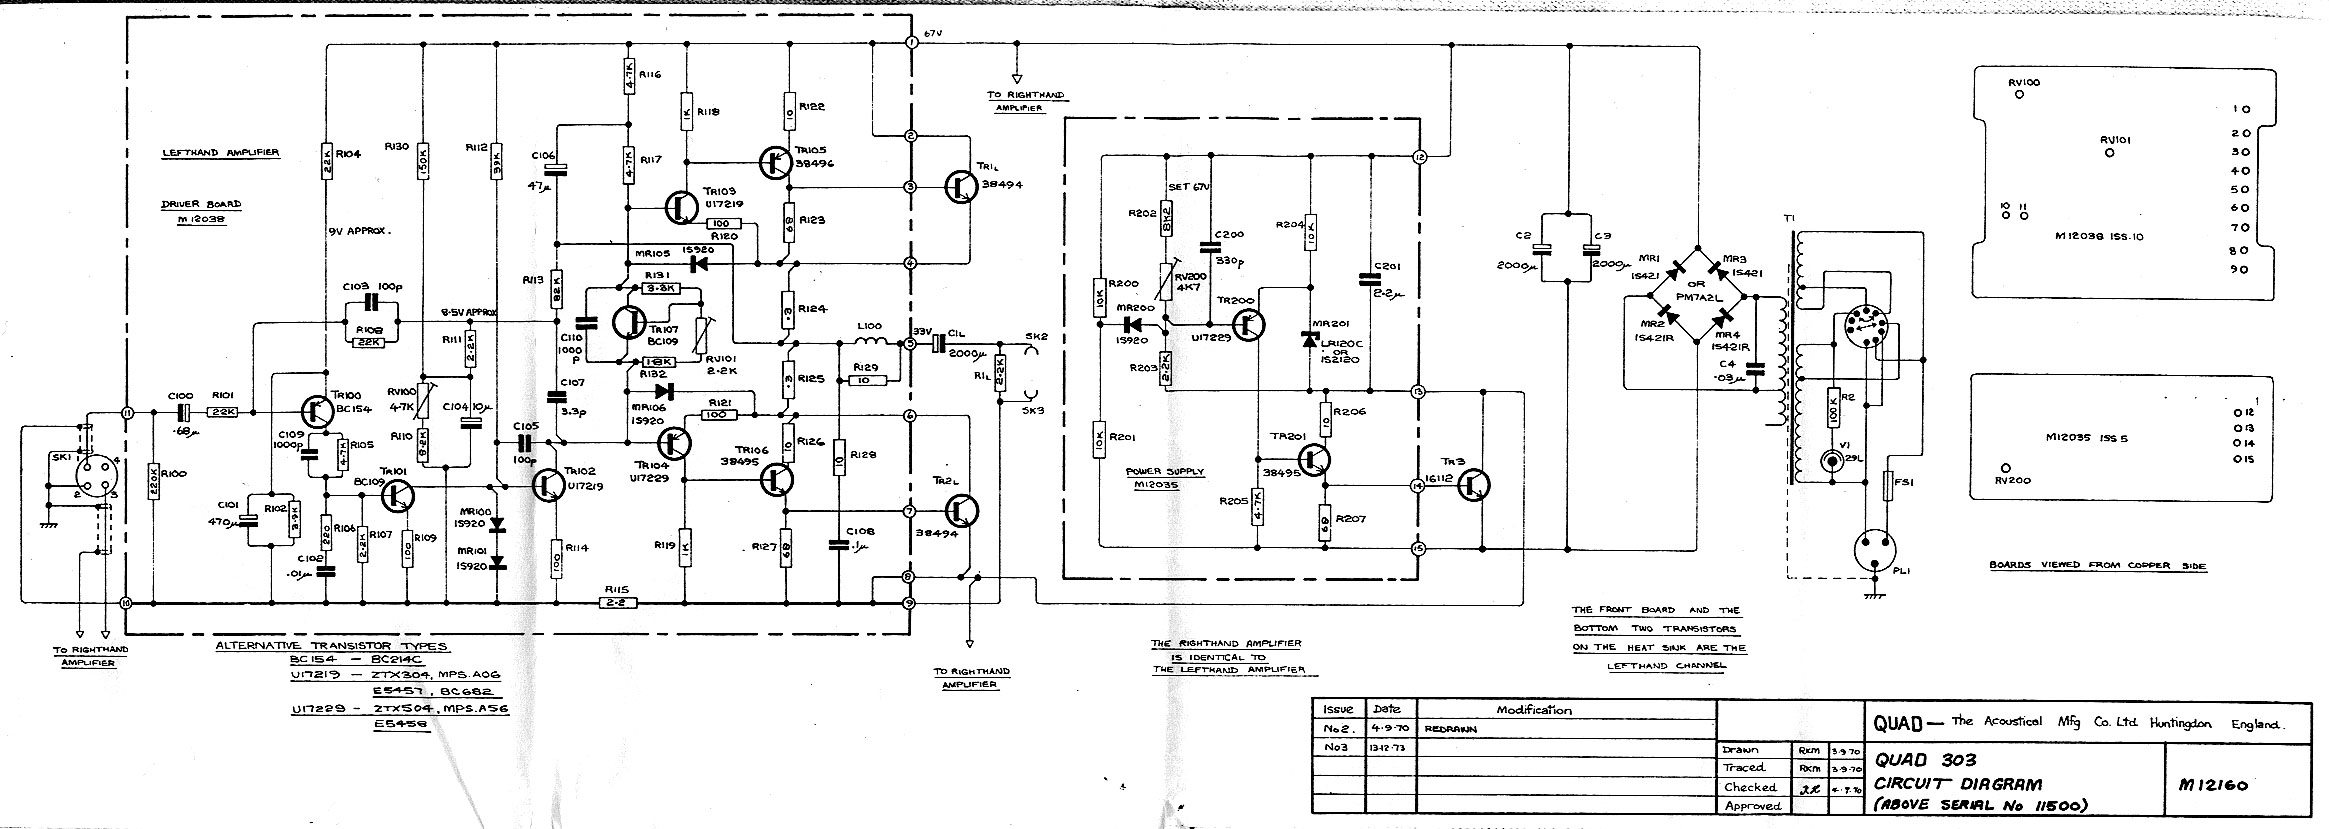 Quad 303 Wiring Diagram Reinvent Your Peace Sports 110cc Atv Schematics Diagrams U2022 Rh Parntesis Co Need A Picture Of 110